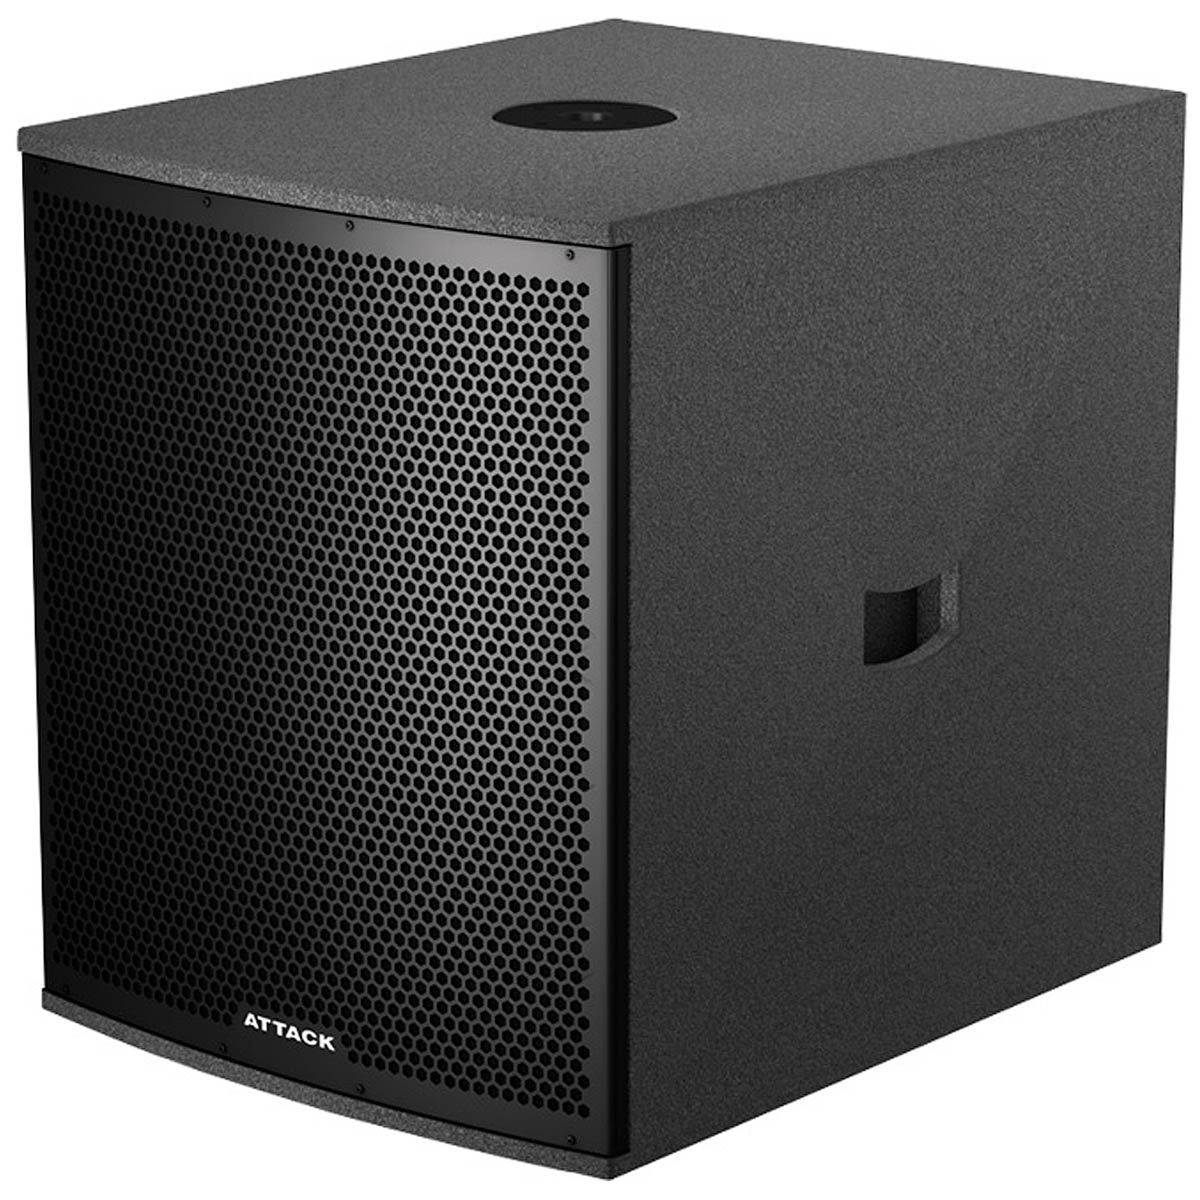 VRS1510A - Subwoofer Ativo 1000W VRS 1510 A - Attack